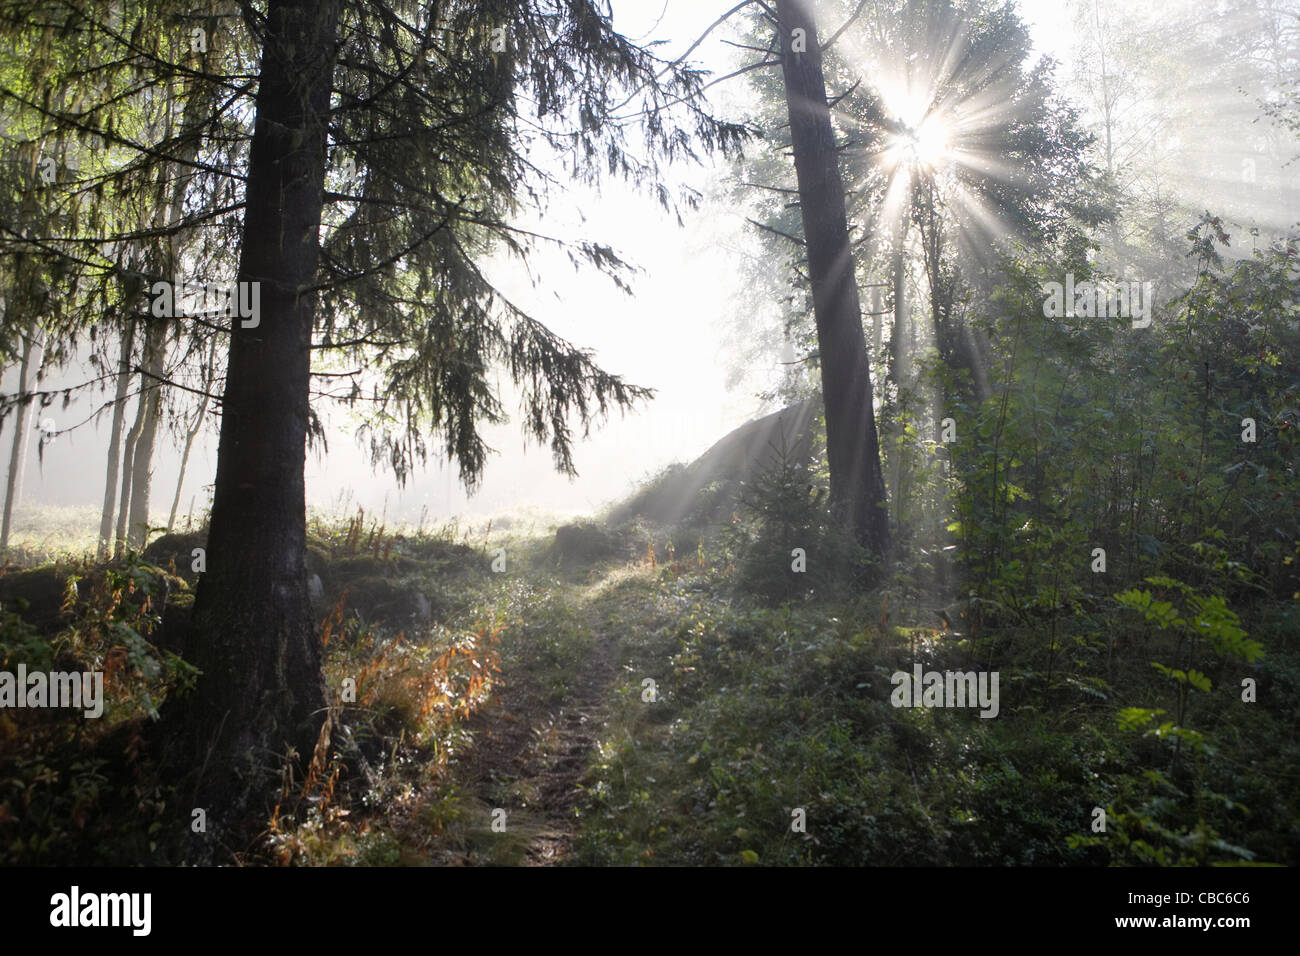 Sunlight shining through forest - Stock Image